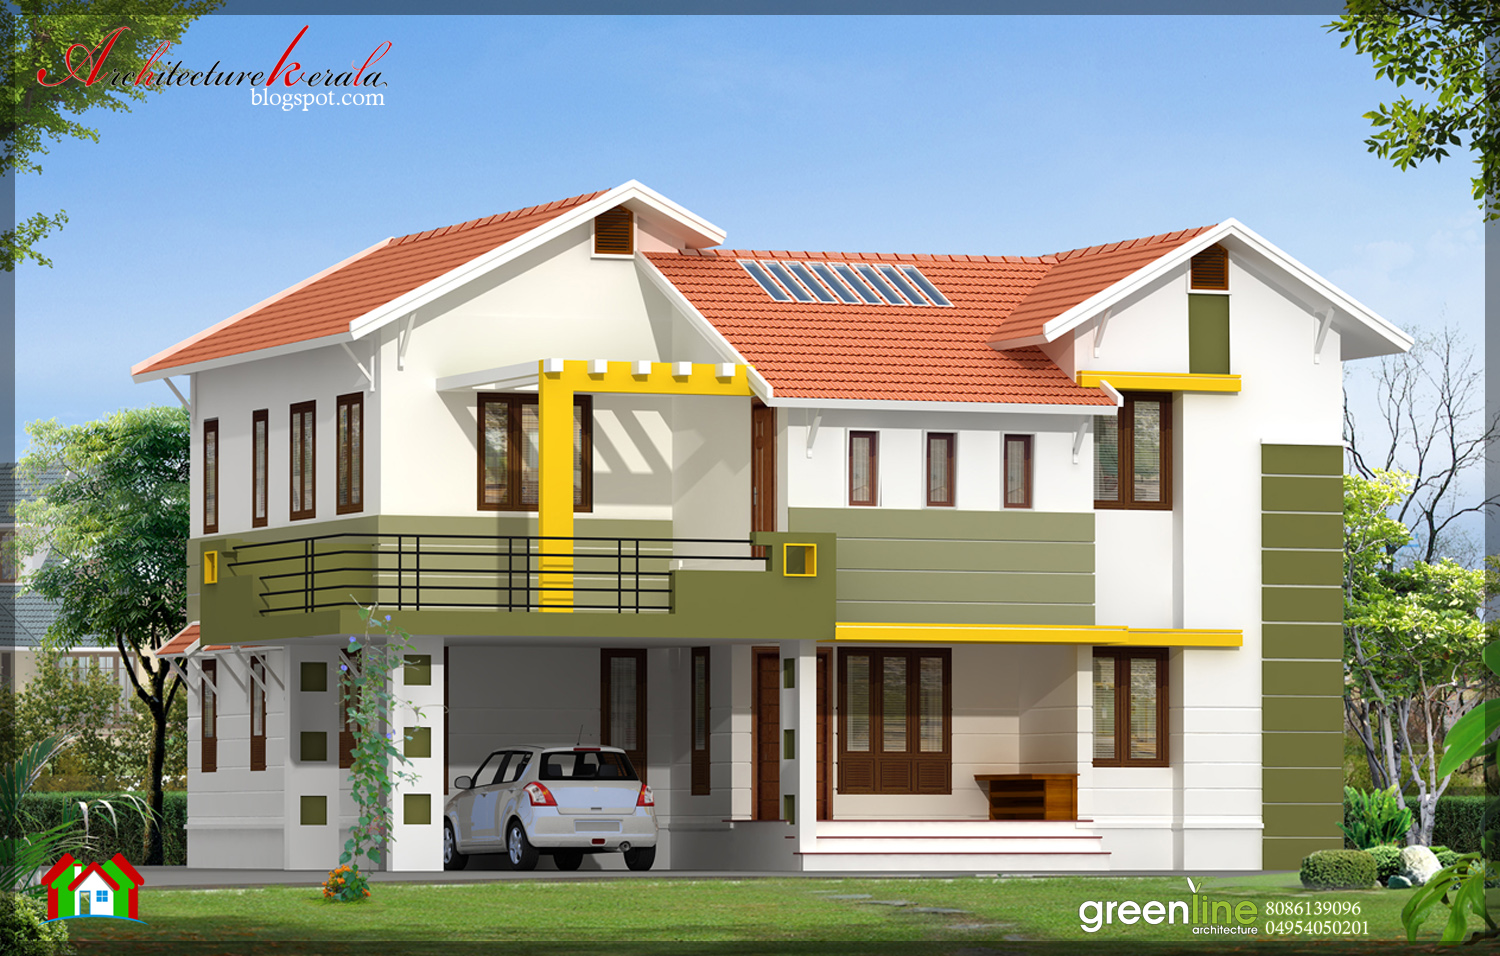 Architecture kerala 4 bhk contemporary style indian home for 2 bhk house designs in india